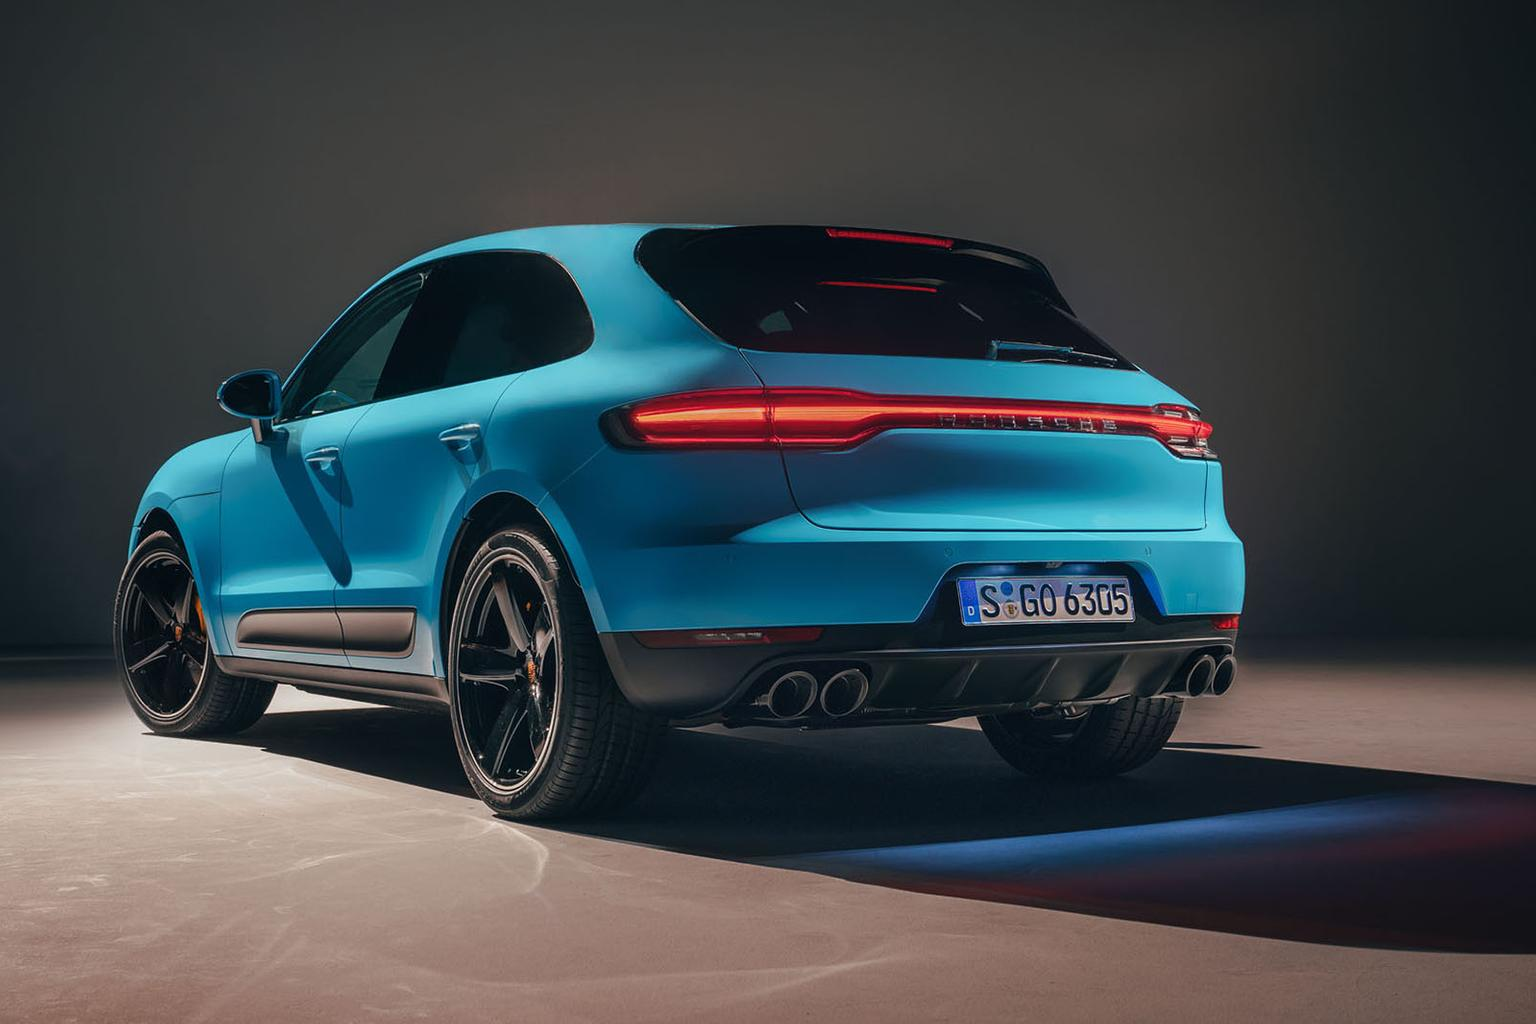 2019 Porsche Macan – price, specs and release date